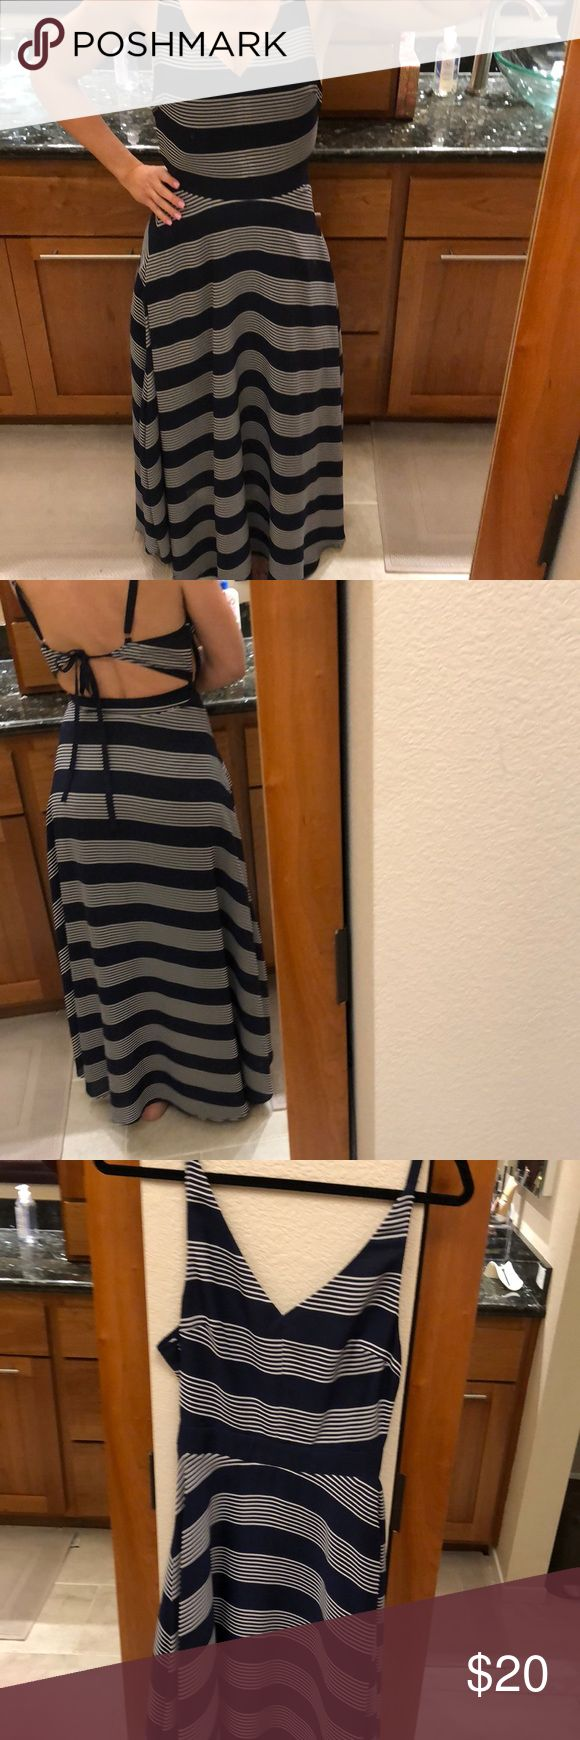 """Navy blue & white striped long dress Navy blue & white striped long flowy dress. Open back with tie. Side hidden zipper. Very minor flaw at chest, shown, not noticeable. Slight pulling at zipper area also shown. 57"""" long. 13"""" across waist. I am 5'5"""", 130 lbs for reference. Dresses Maxi"""